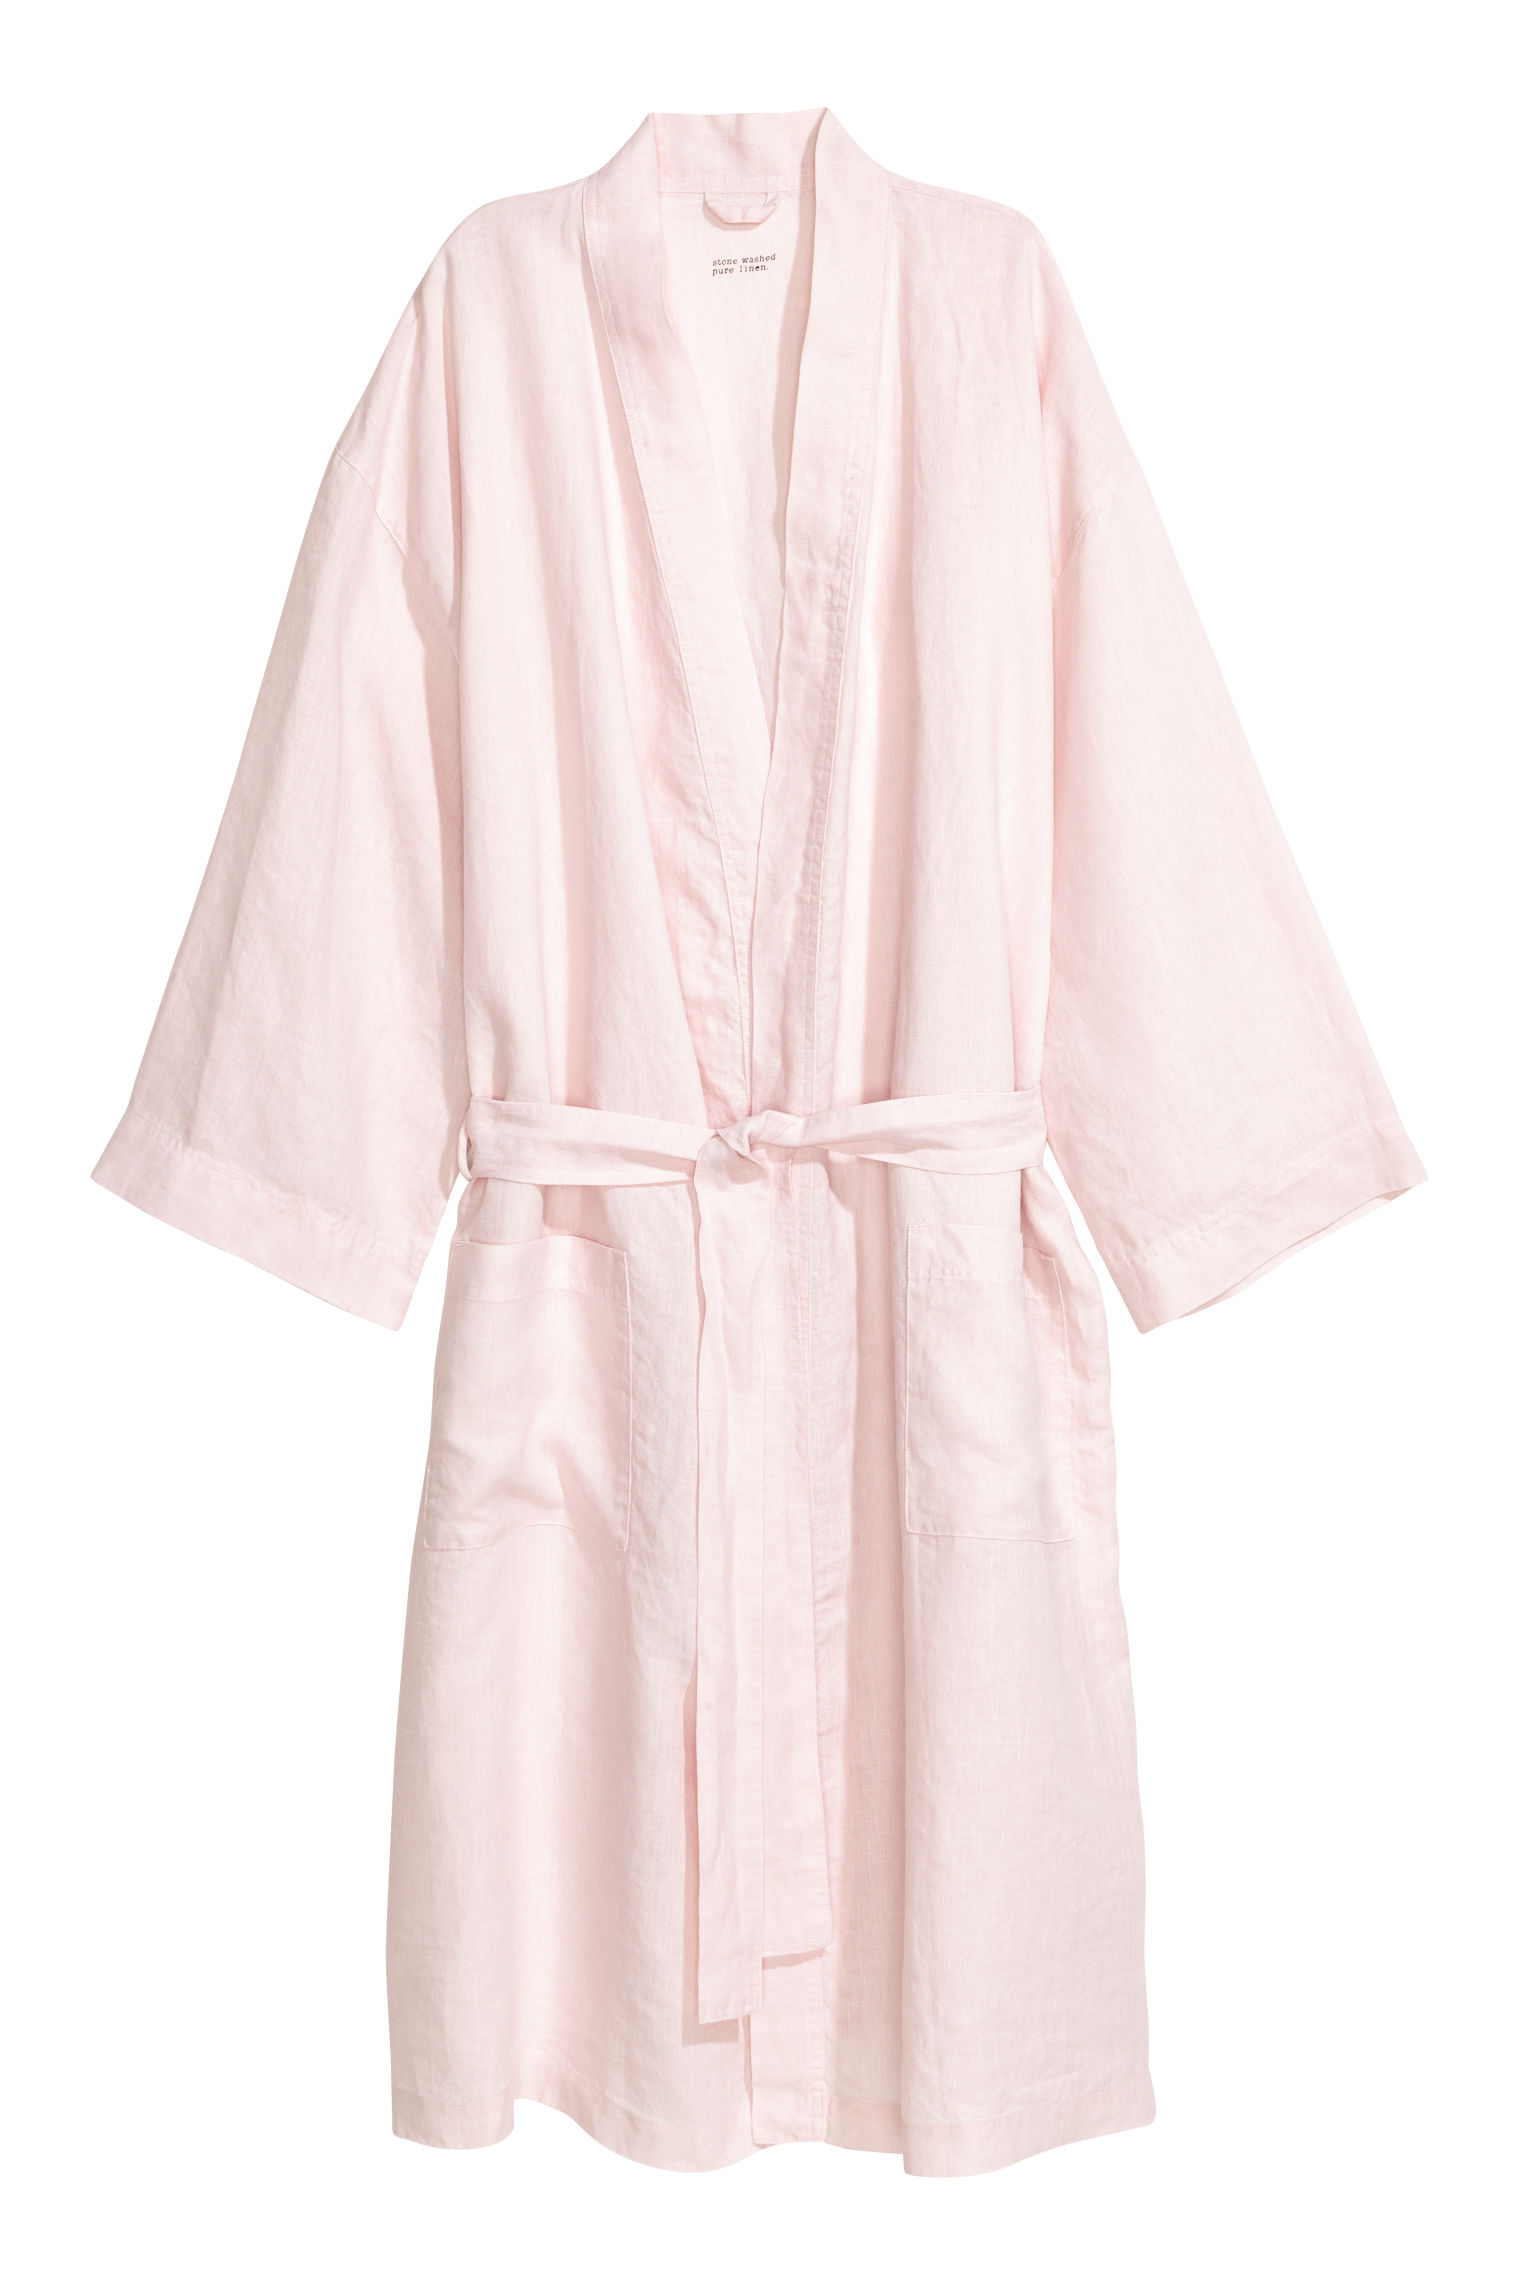 58492263c4 Washed Linen Bathrobe - Light gray - Home All